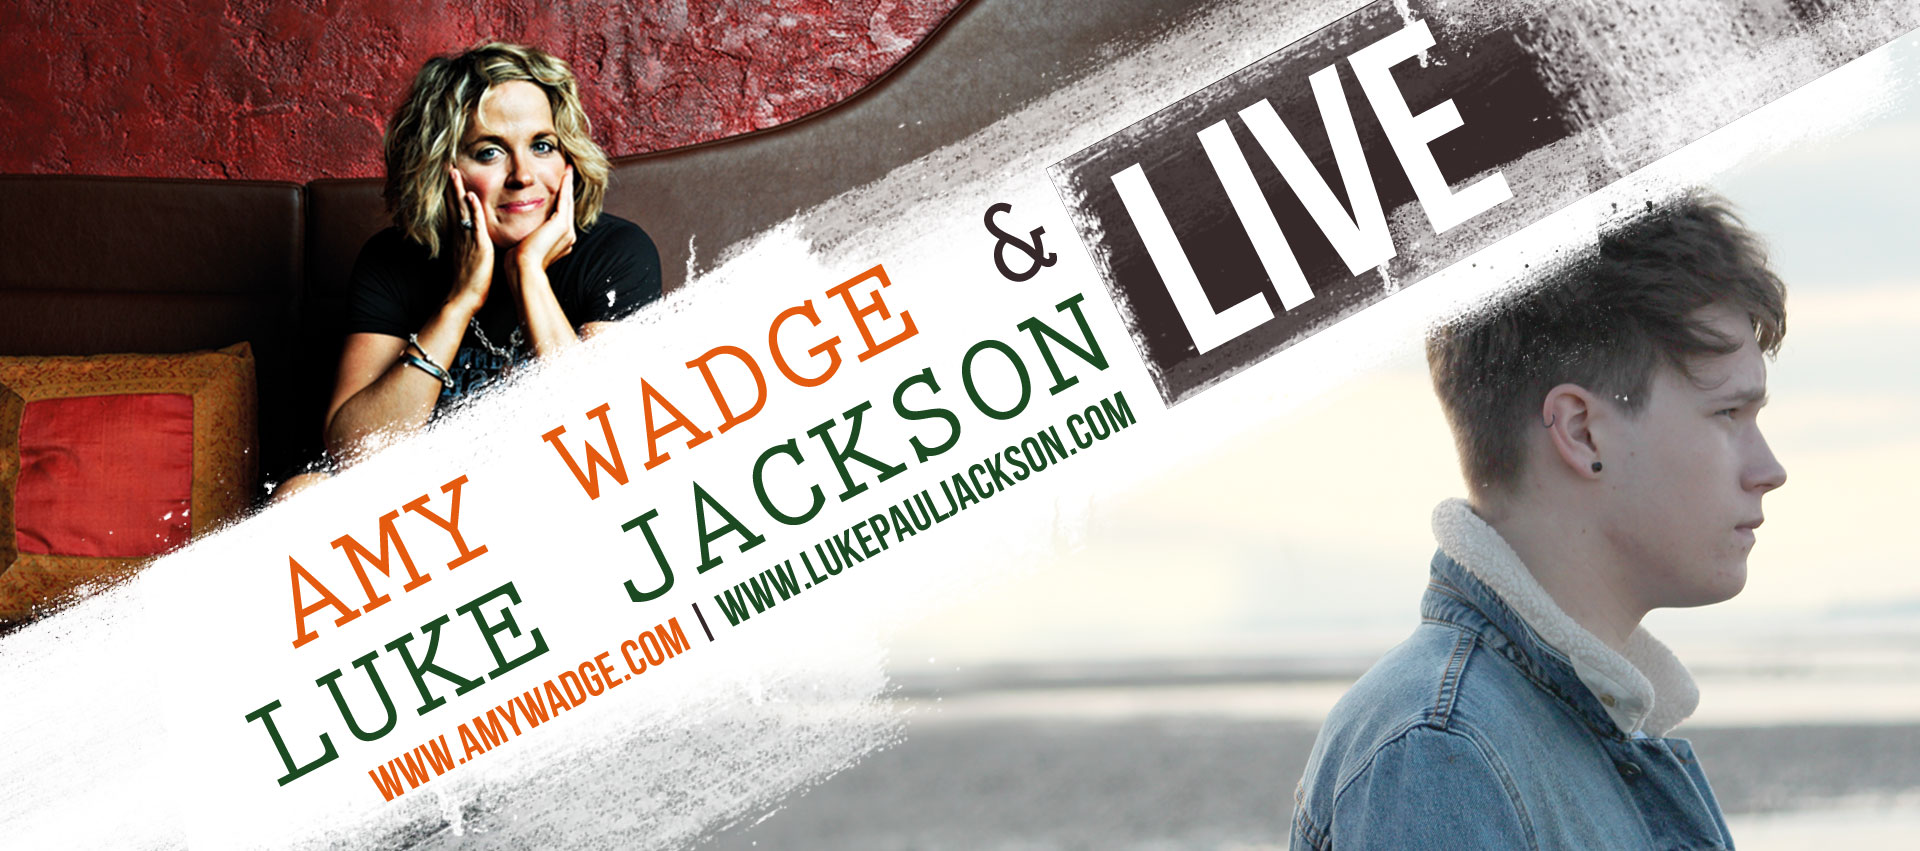 Amy Wadge and Luke Jackson Live